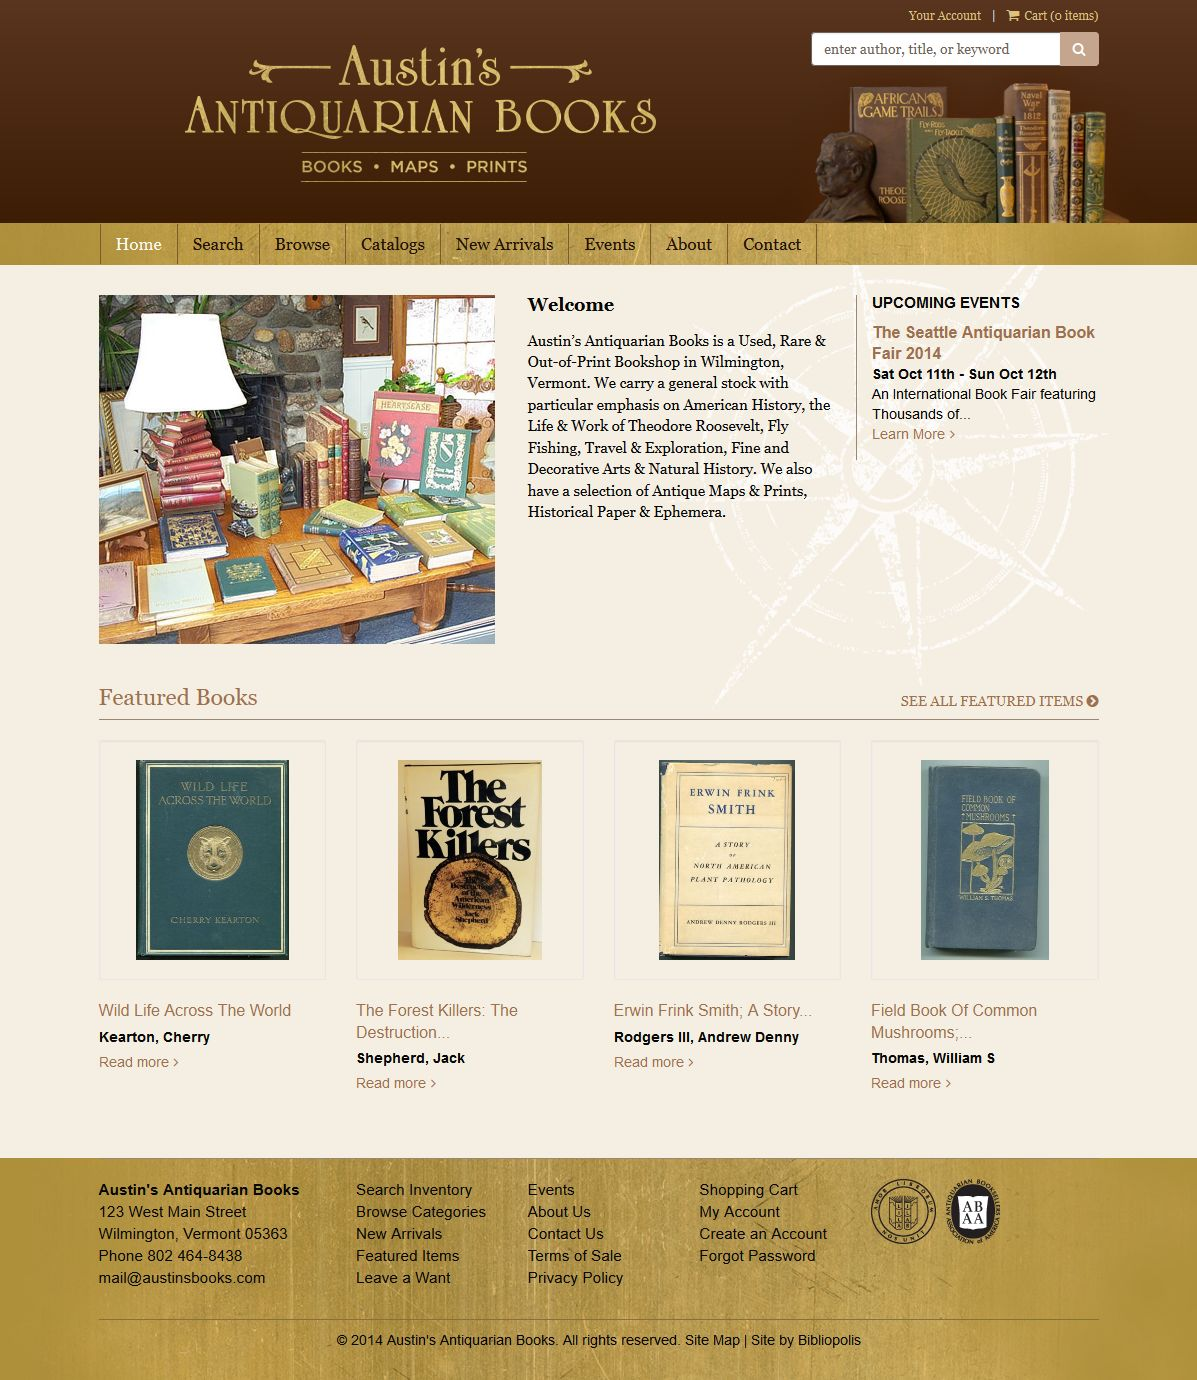 Austin's Antiquarian Books